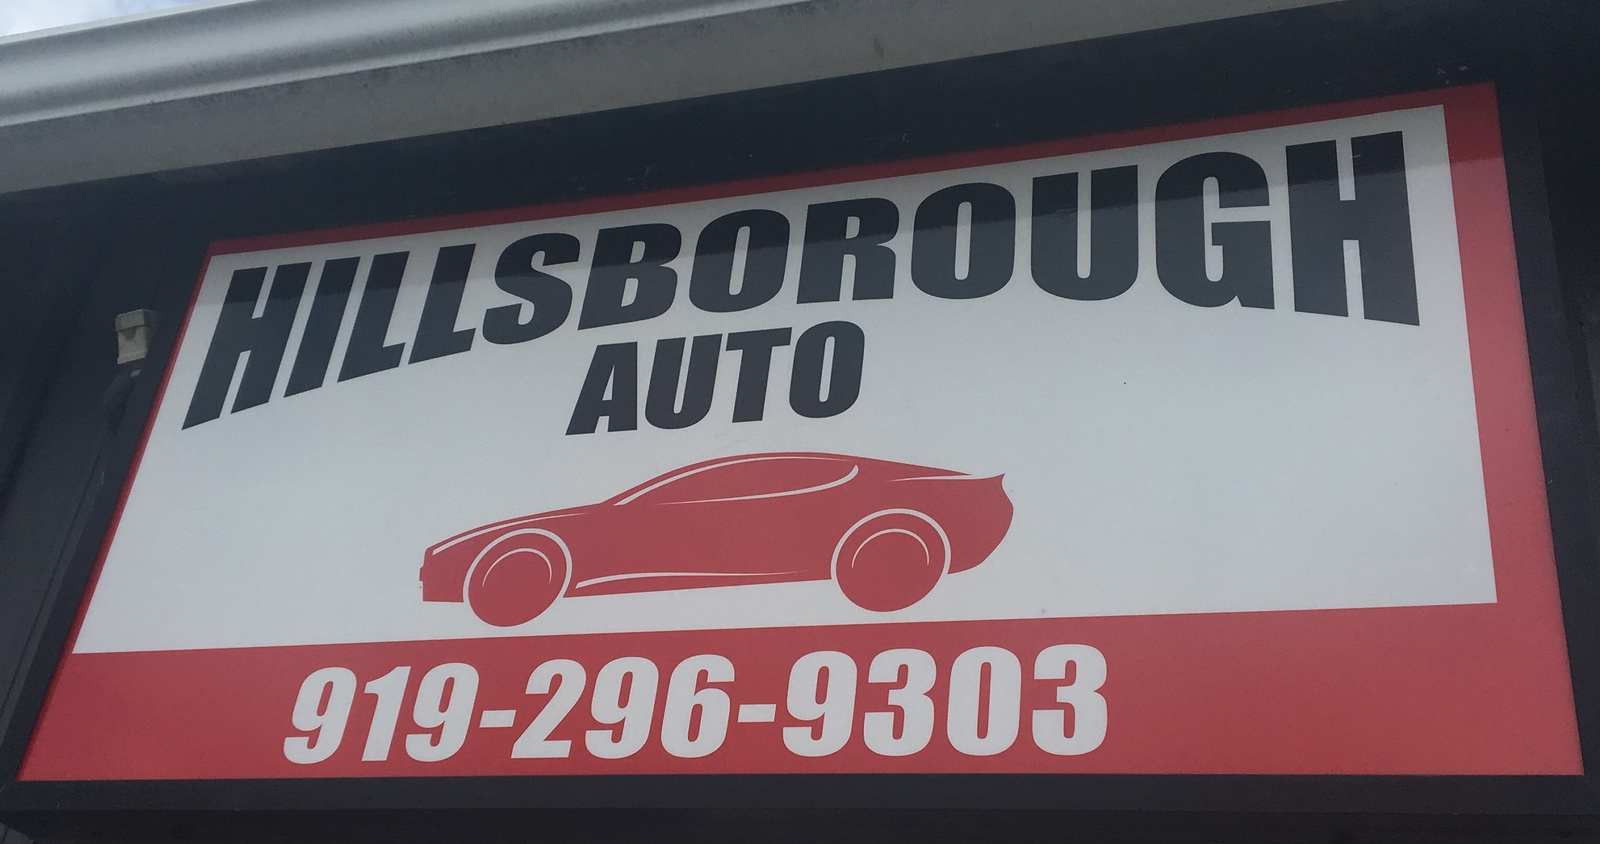 Hillsborough Auto - Hillsborough, NC: Read Consumer ...